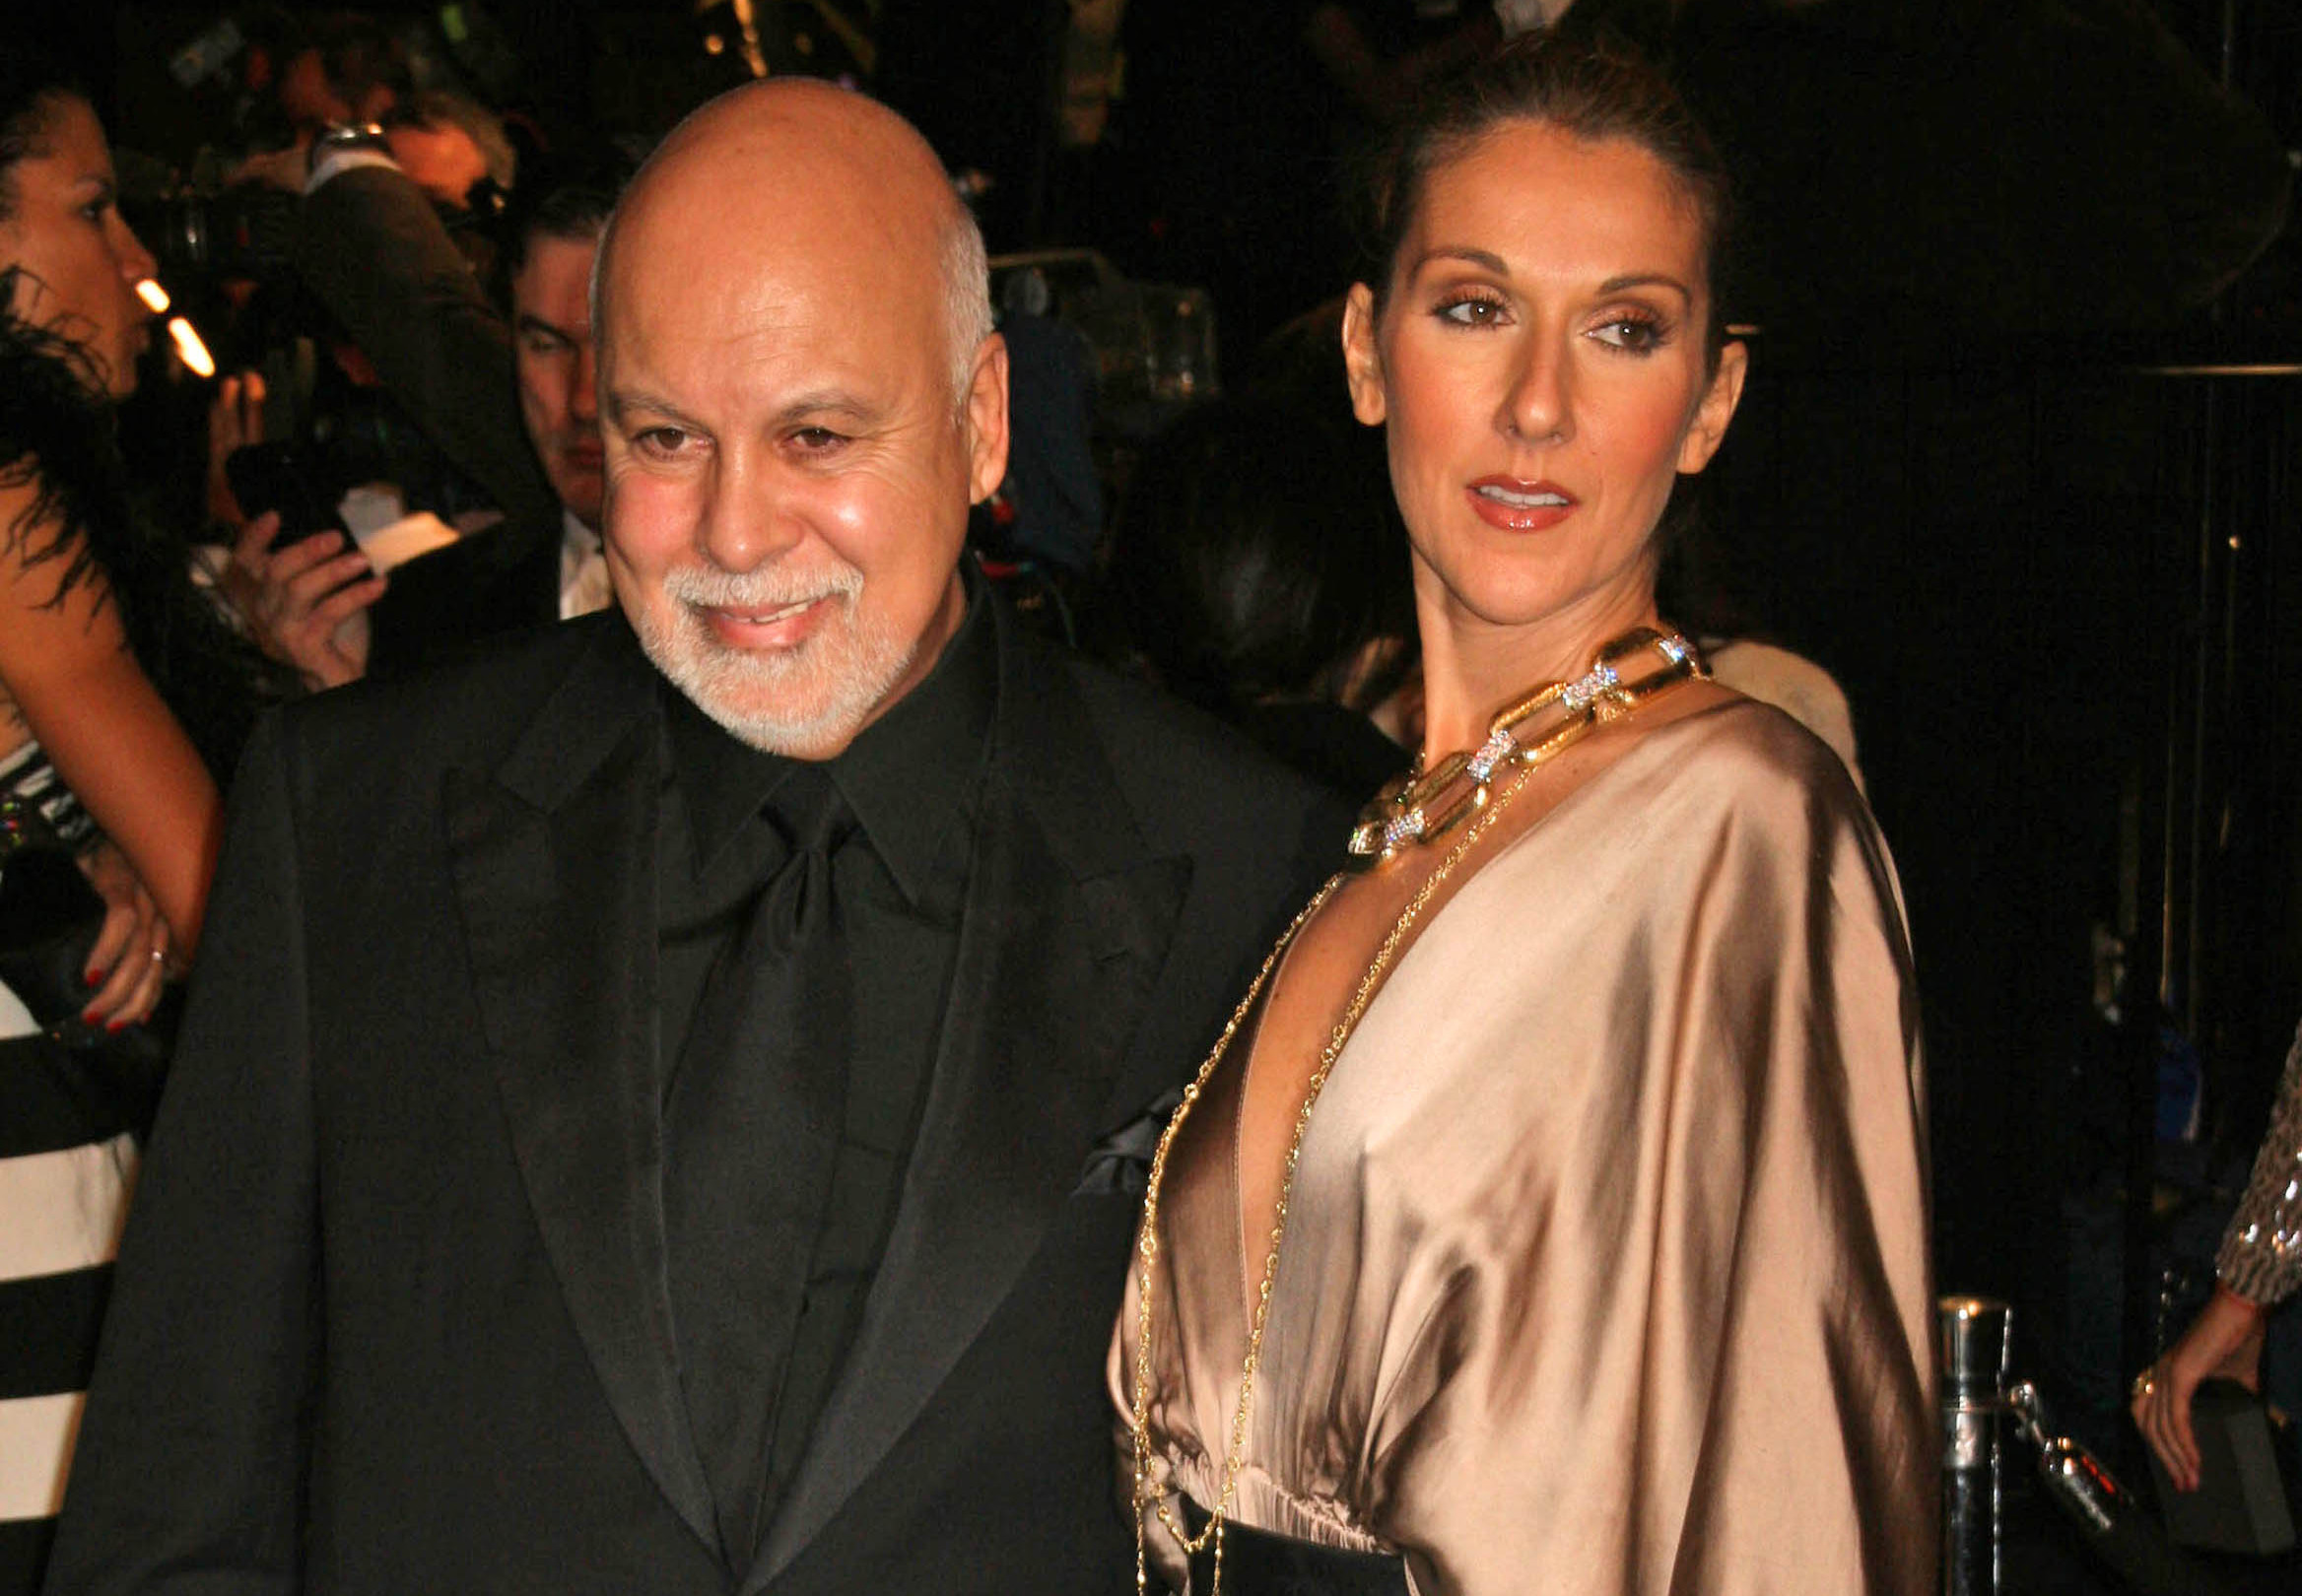 Rene Angelil and Celine Dion at the 2007 Vanity Fair Oscar Party. Mortons, West Hollywood (S_Buckley / Shutterstock)